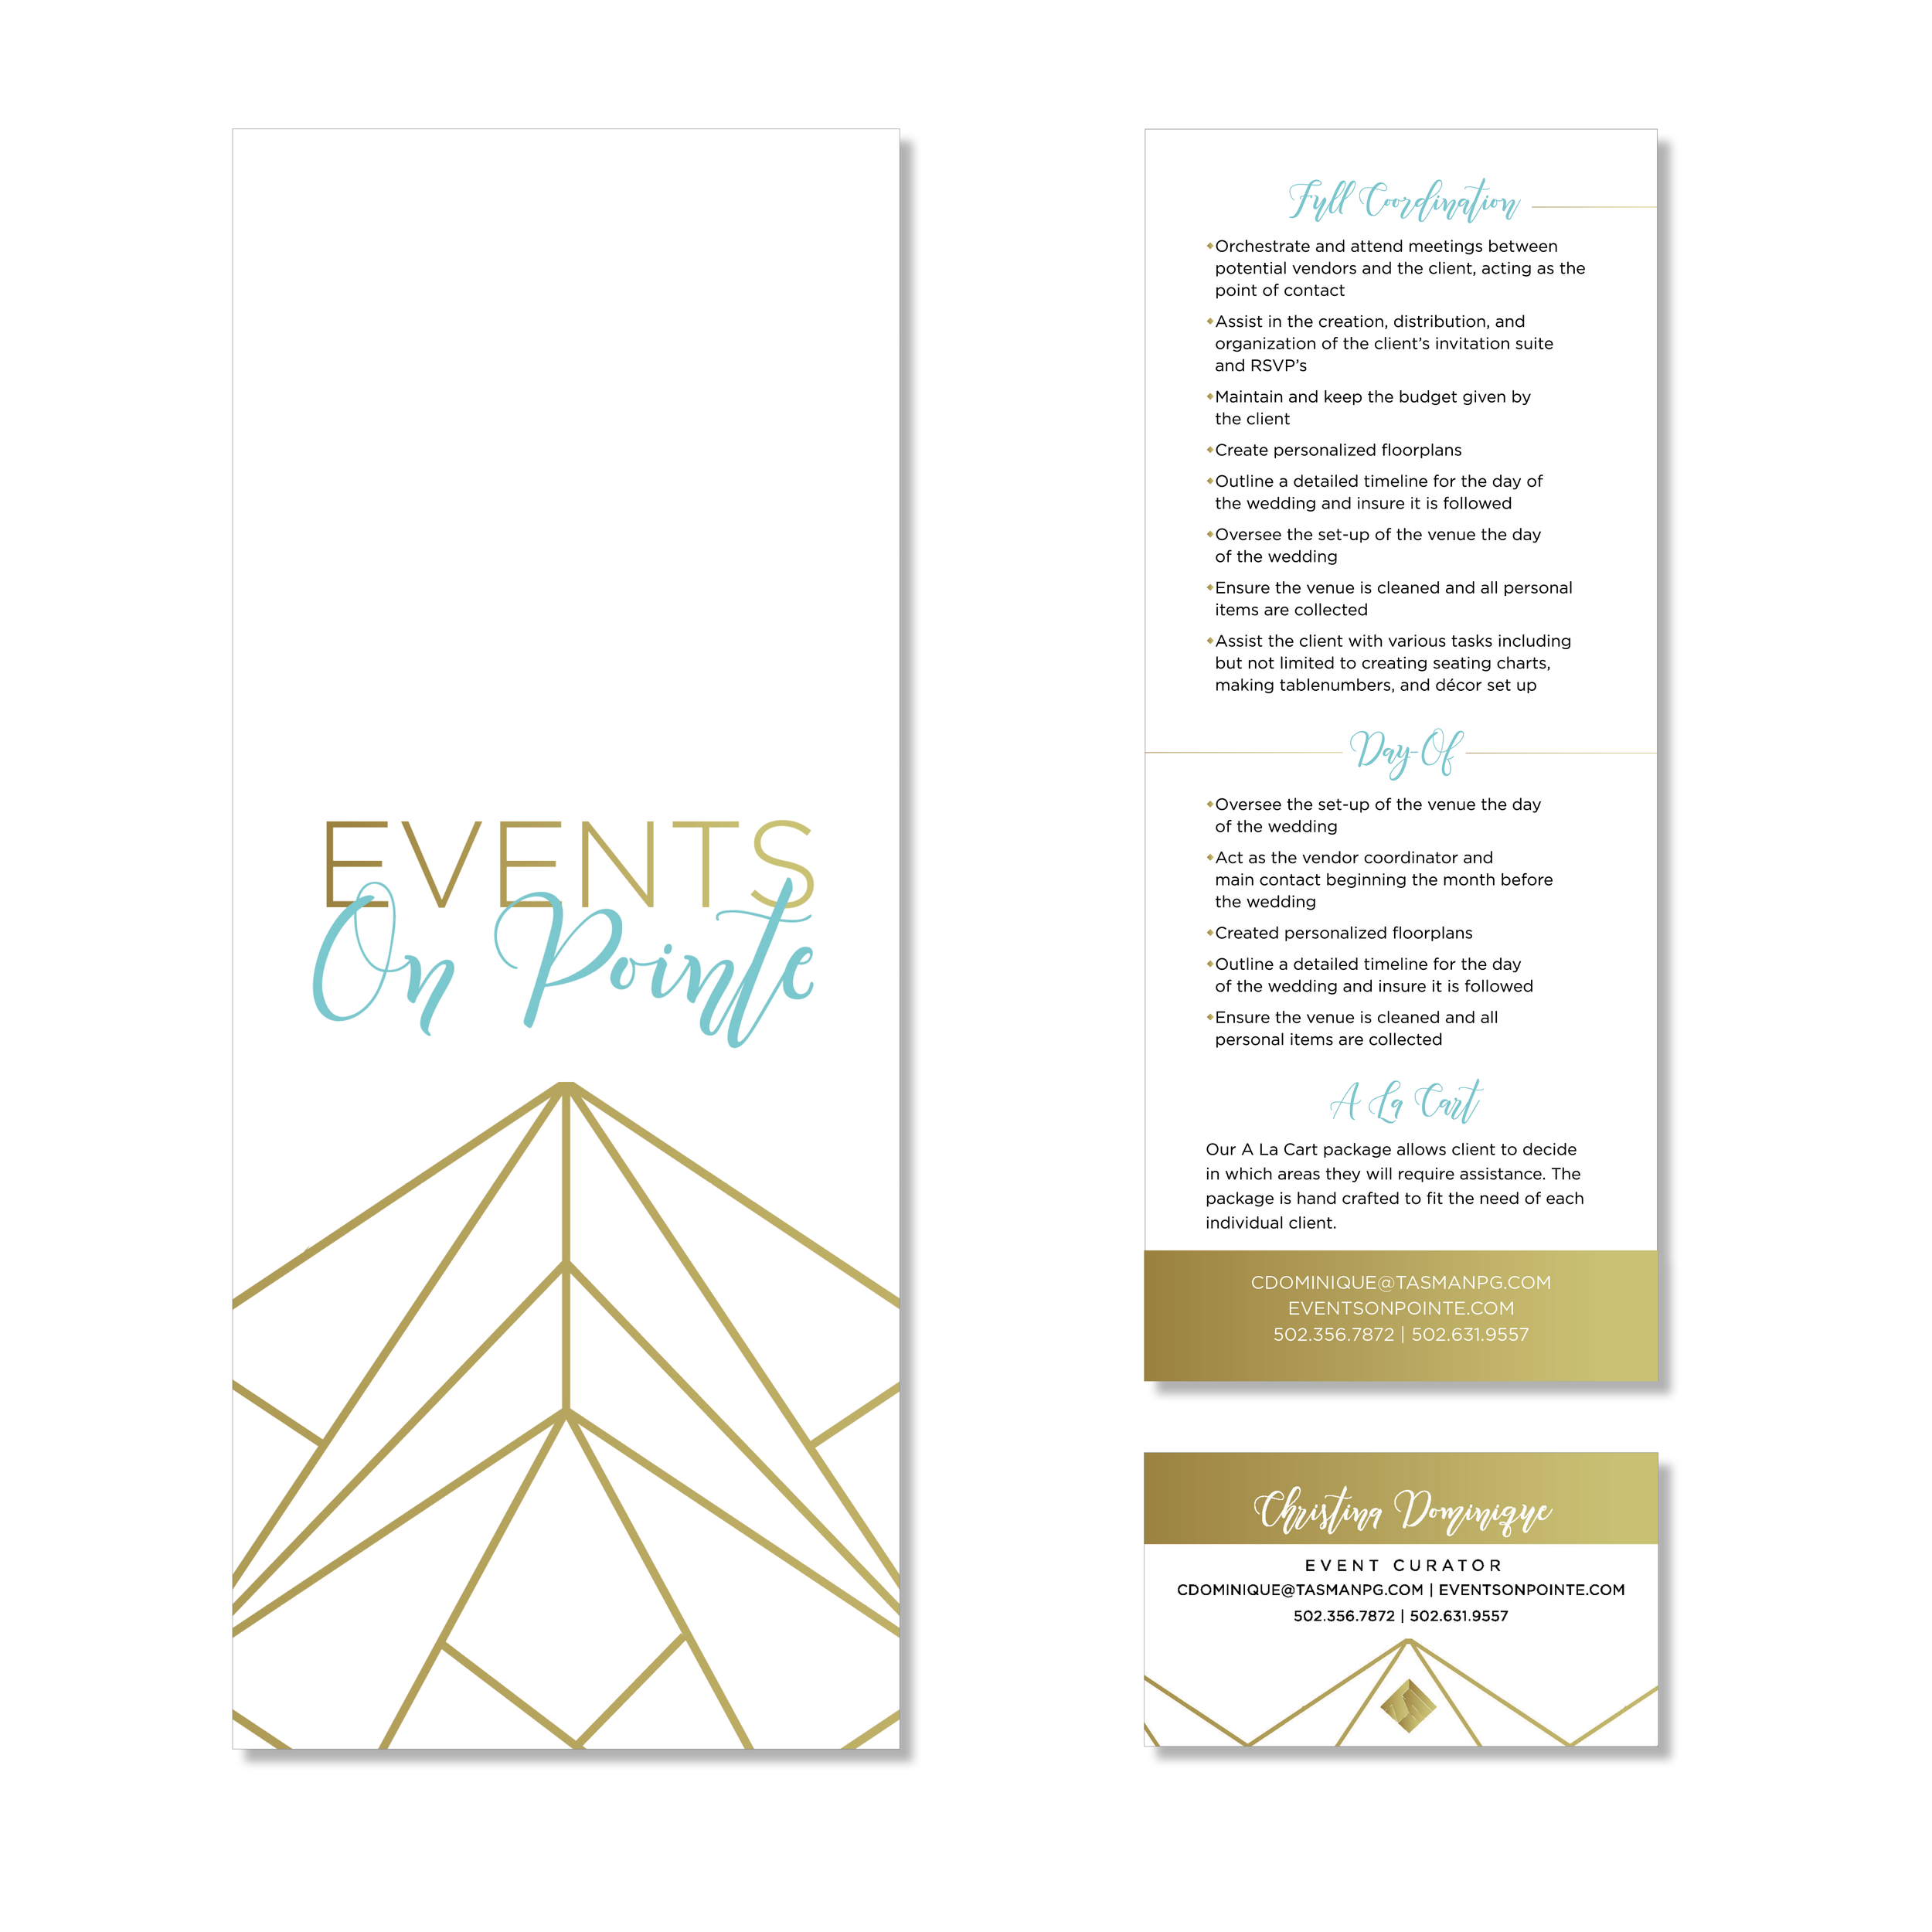 Events on Pointe